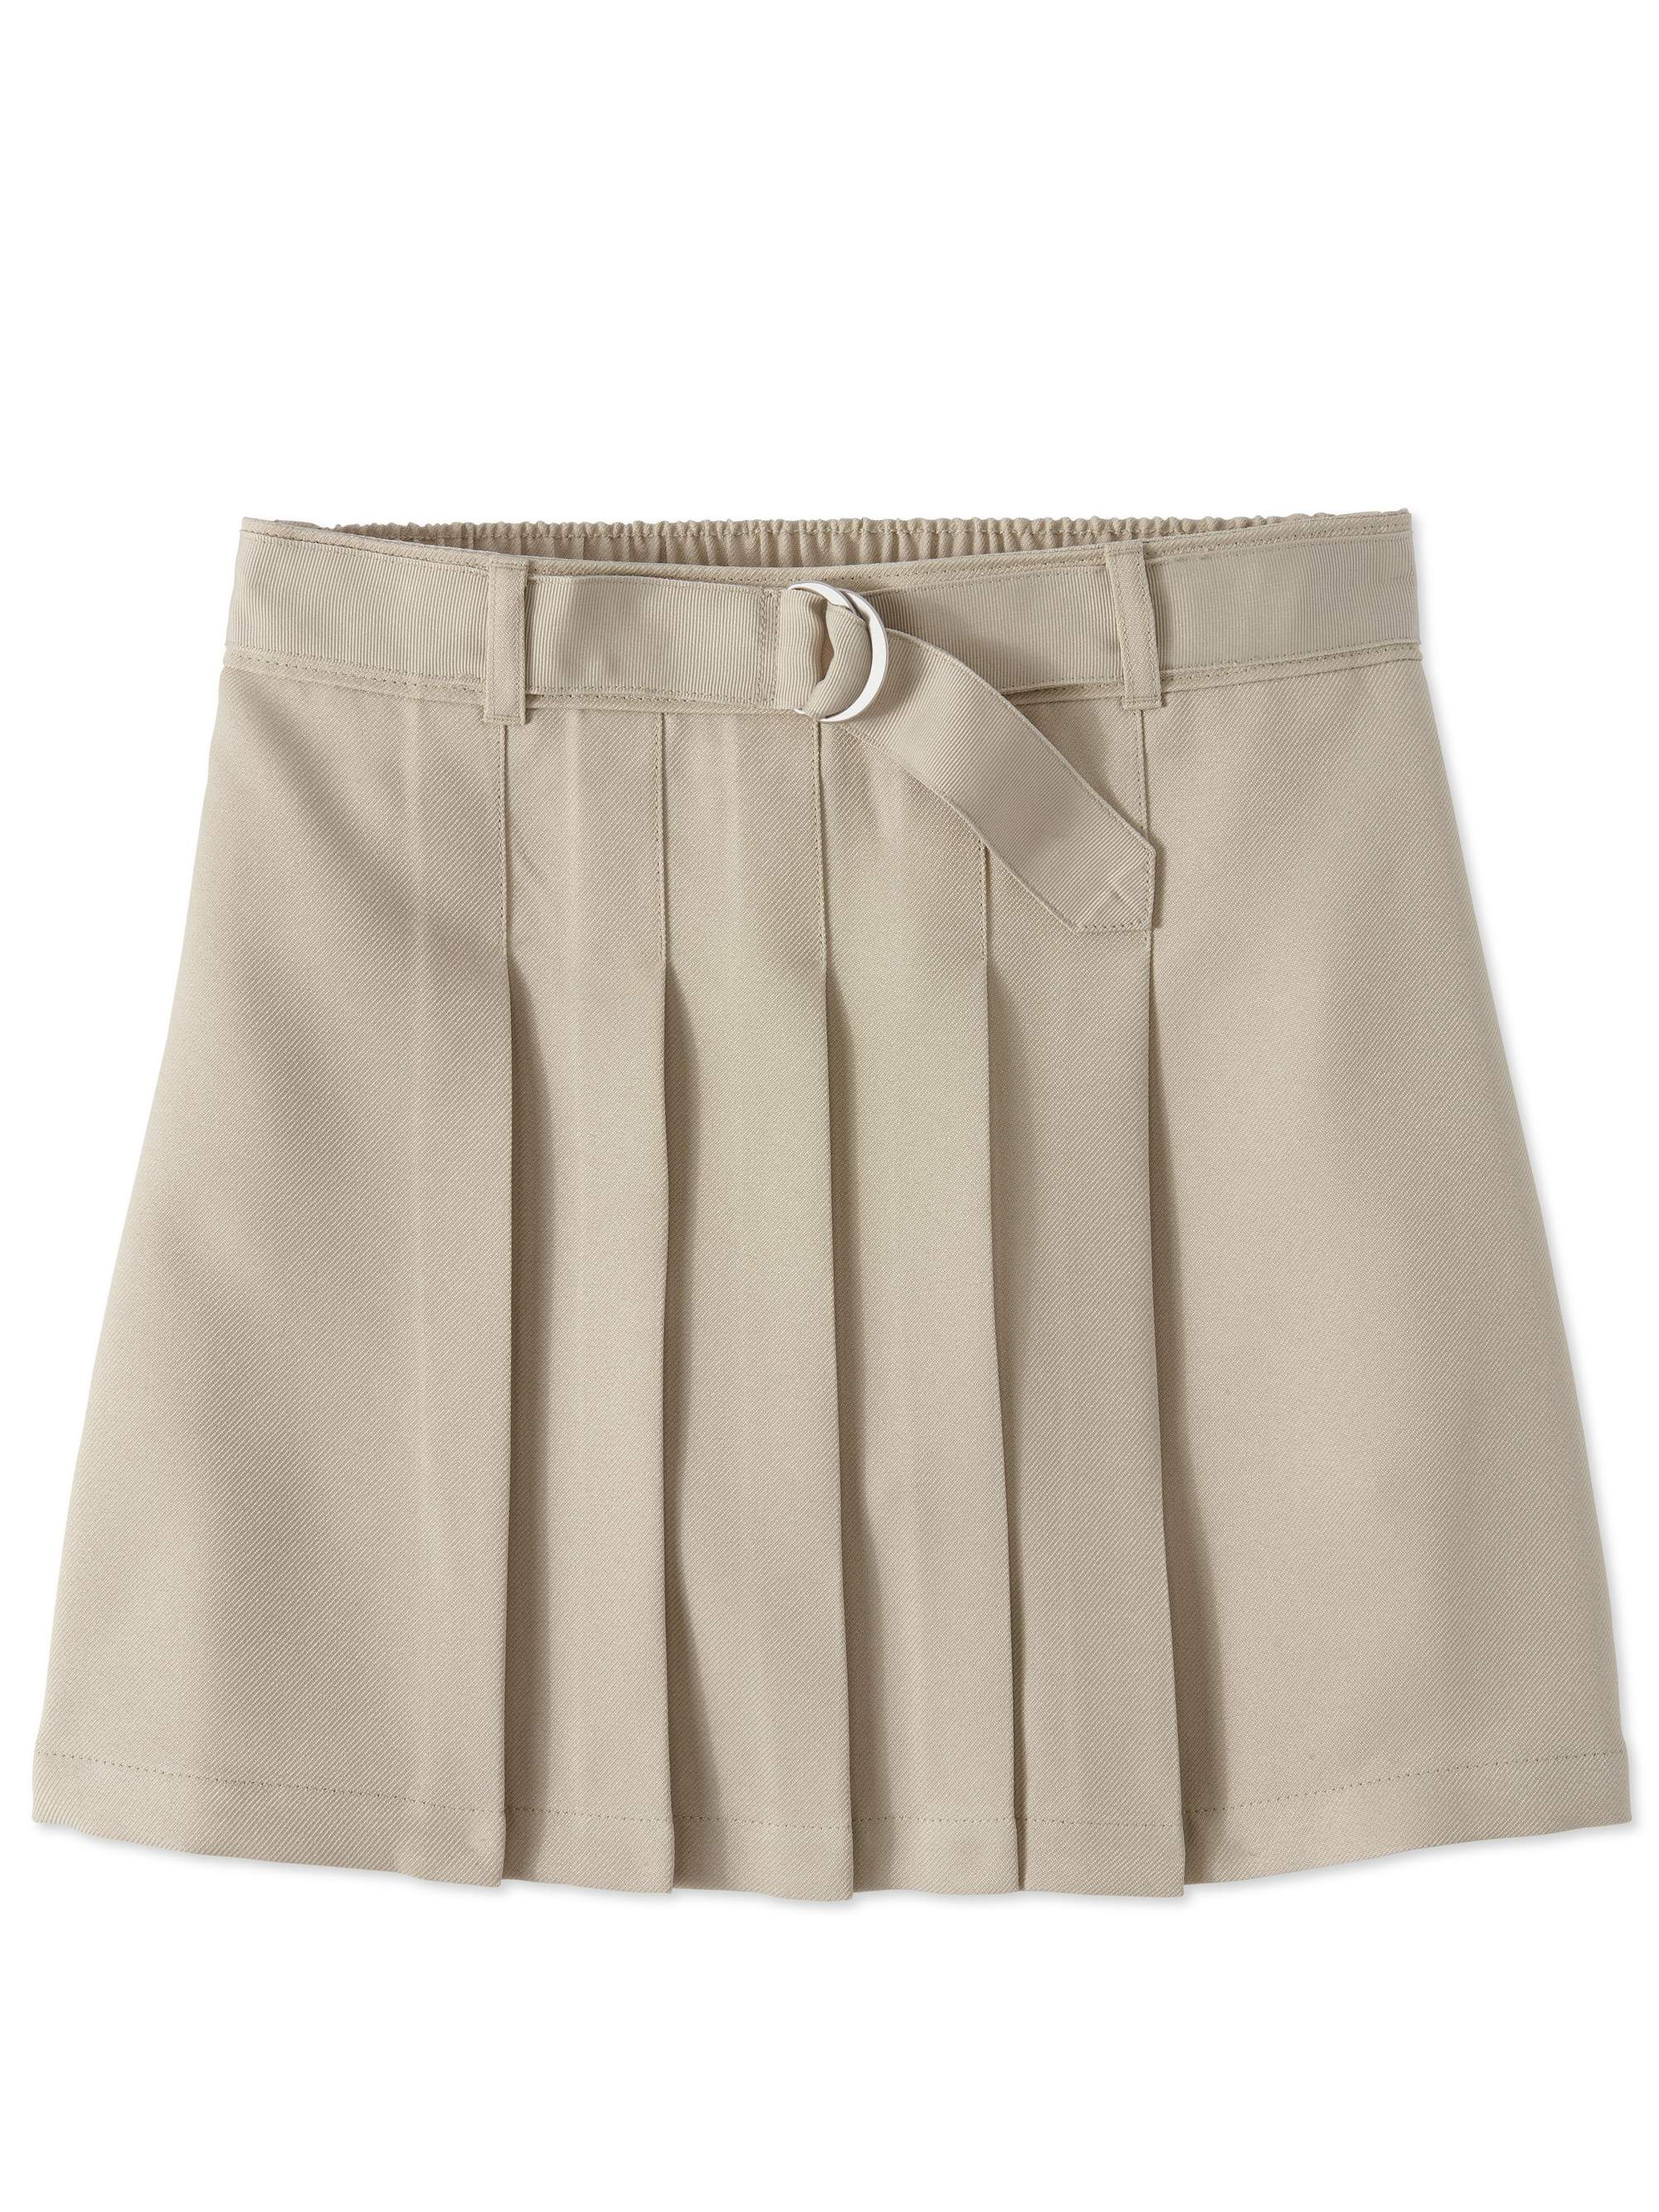 Girls School Uniform Pleated Belted Scooter